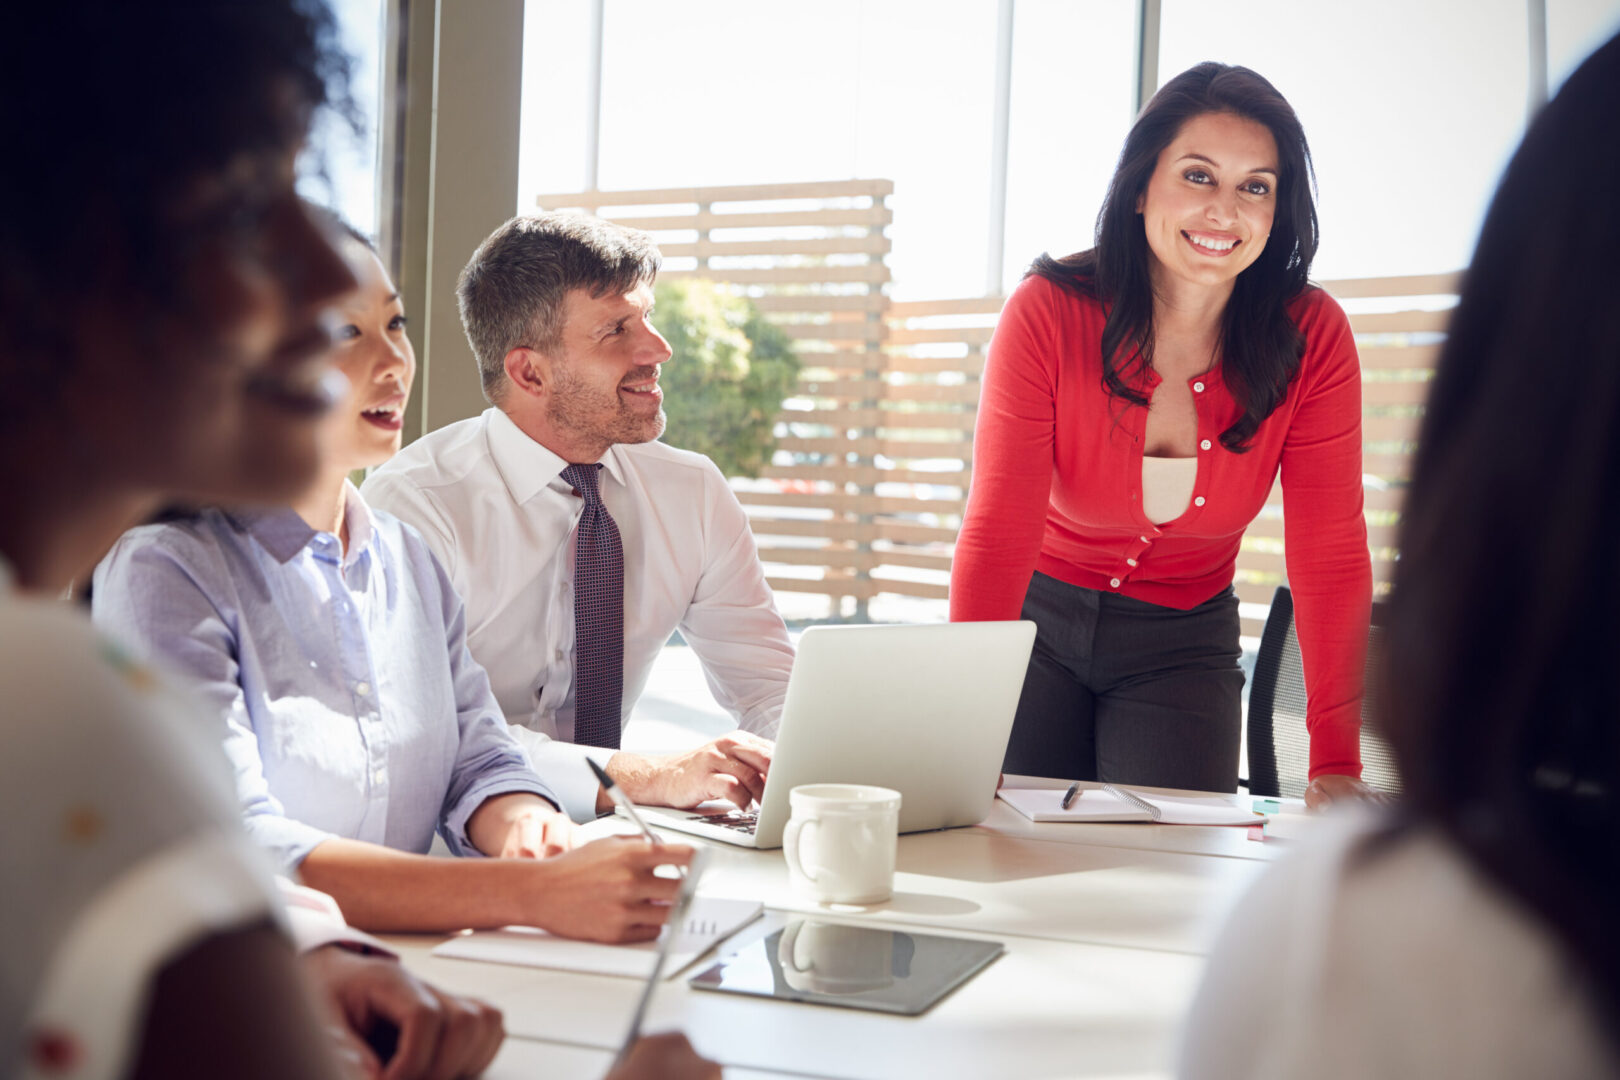 Hispanic businesswoman listening to colleagues at a meeting